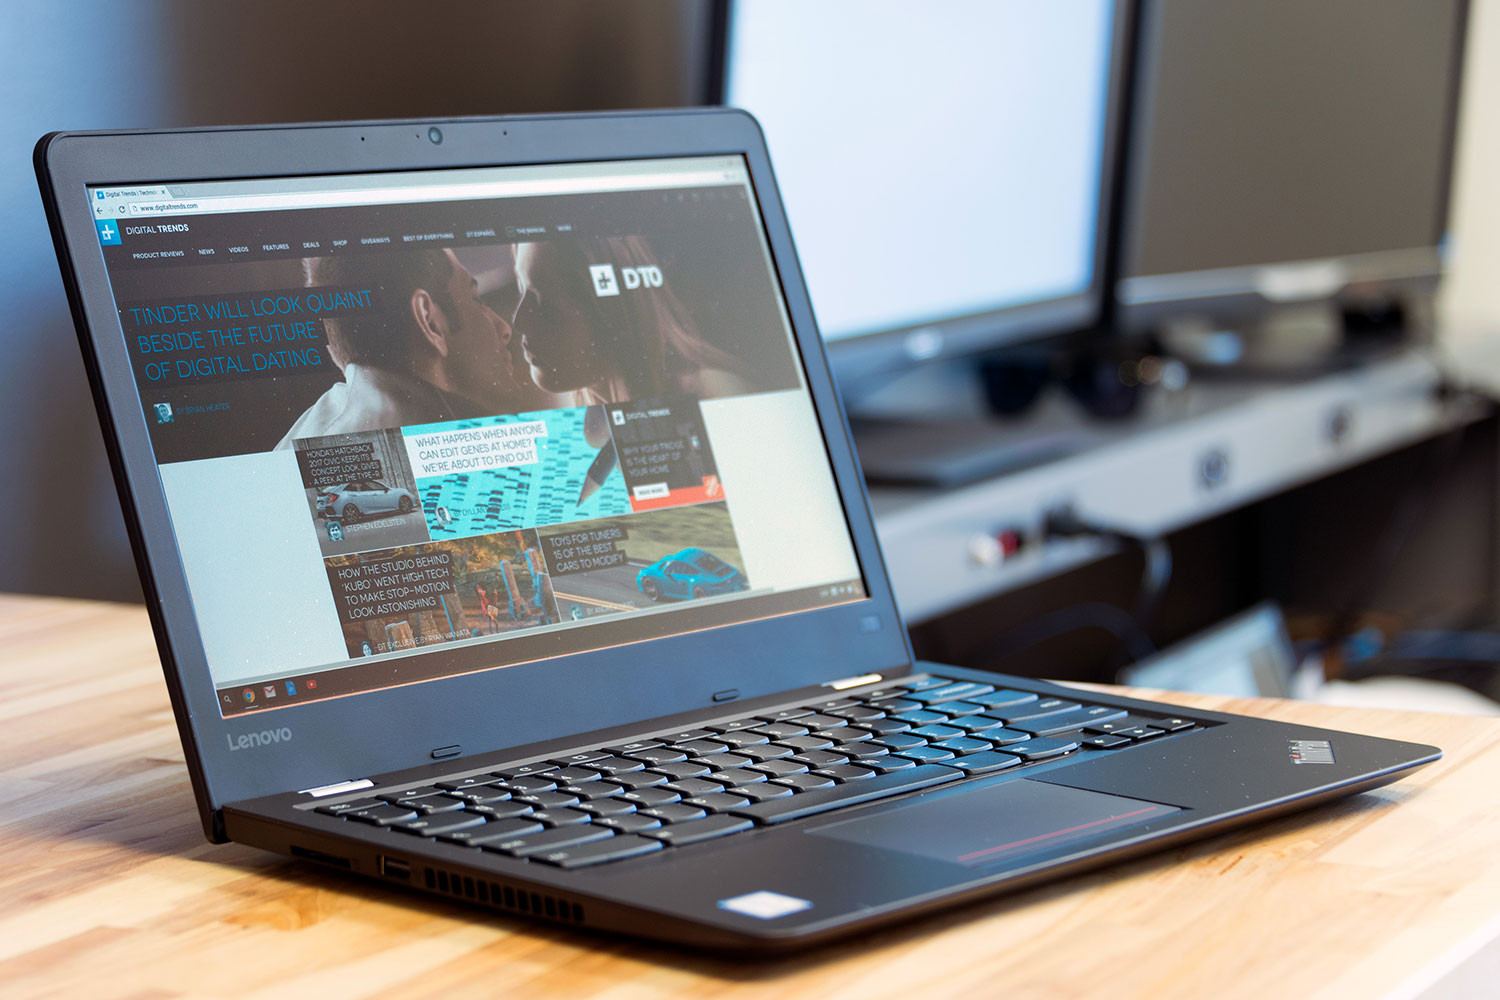 Microsoft may reduce its Windows 10 licensing fee for OEMs to combat Chromebooks